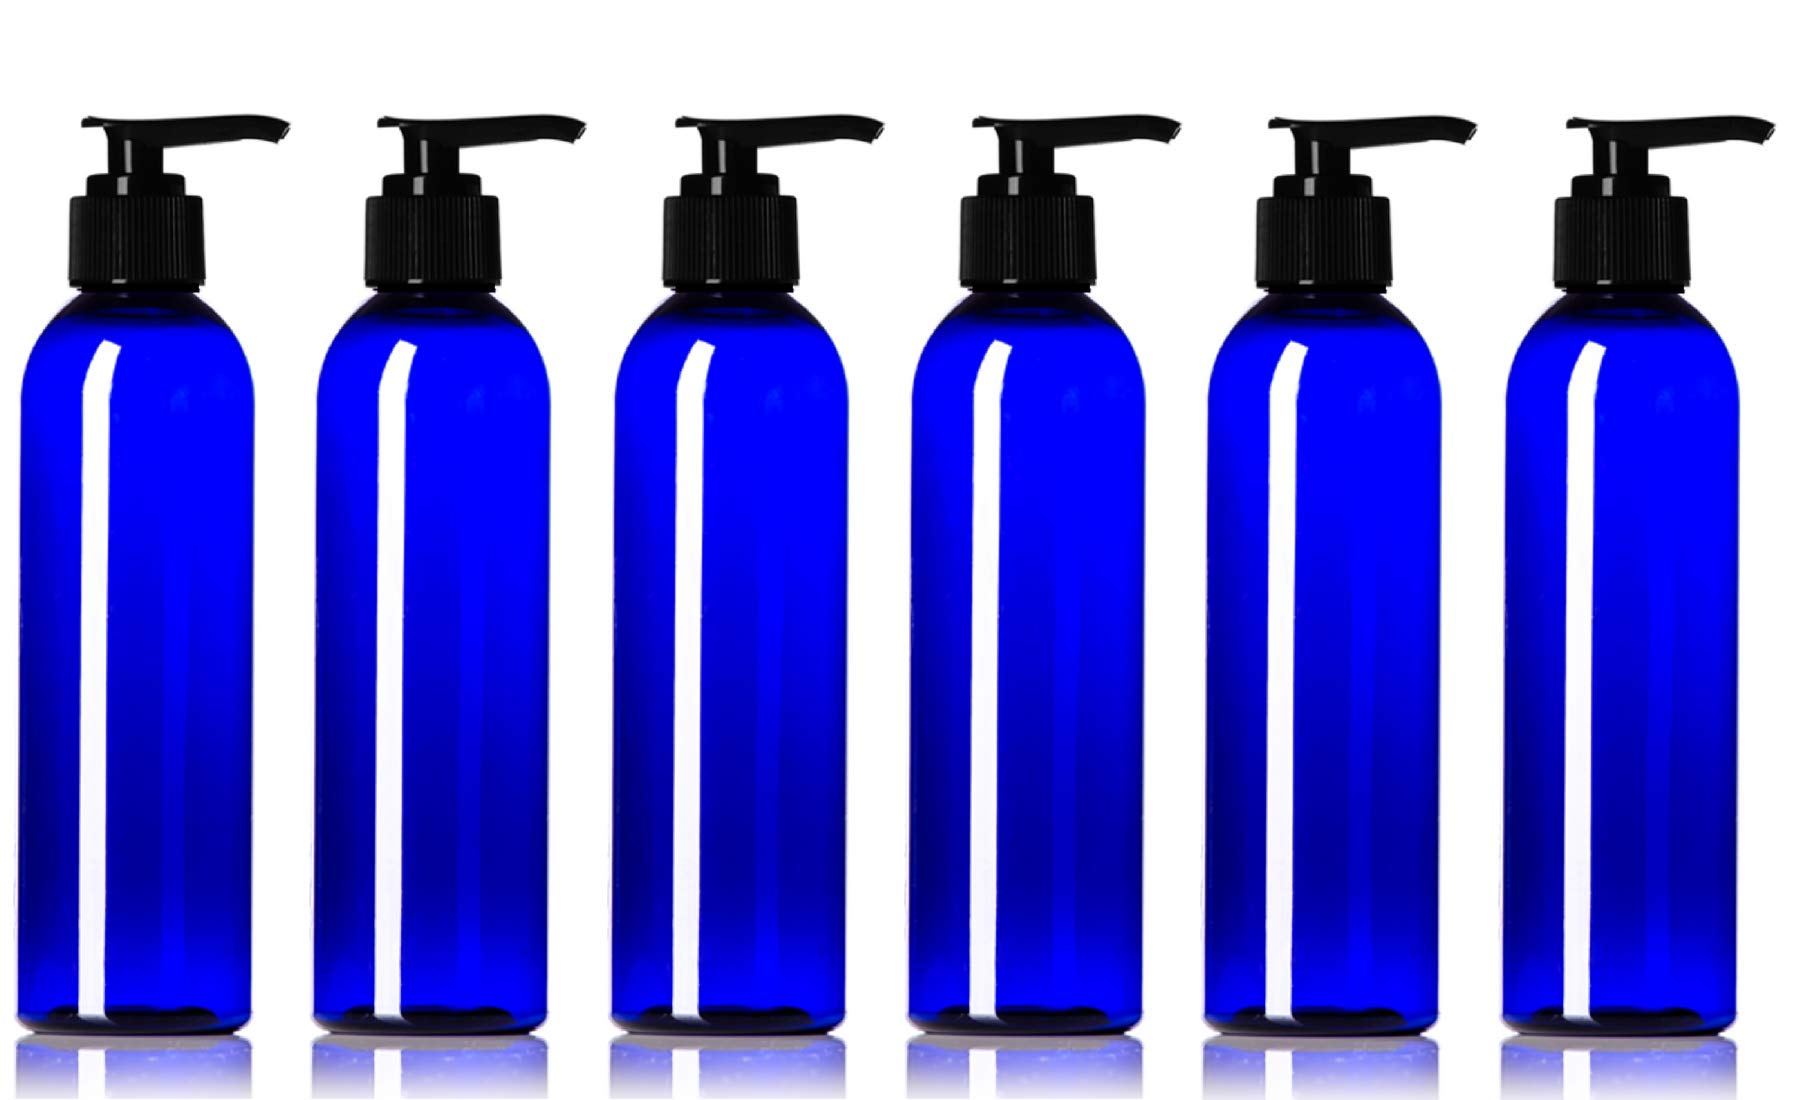 6 oz Empty Plastic Lotion Bottles Made in USA BPA-Free with Pump Dispensers Refillable Containers for Shampoo, Castile Liquid Soap, Massage Oil (Pack of 6, Cobalt Blue)